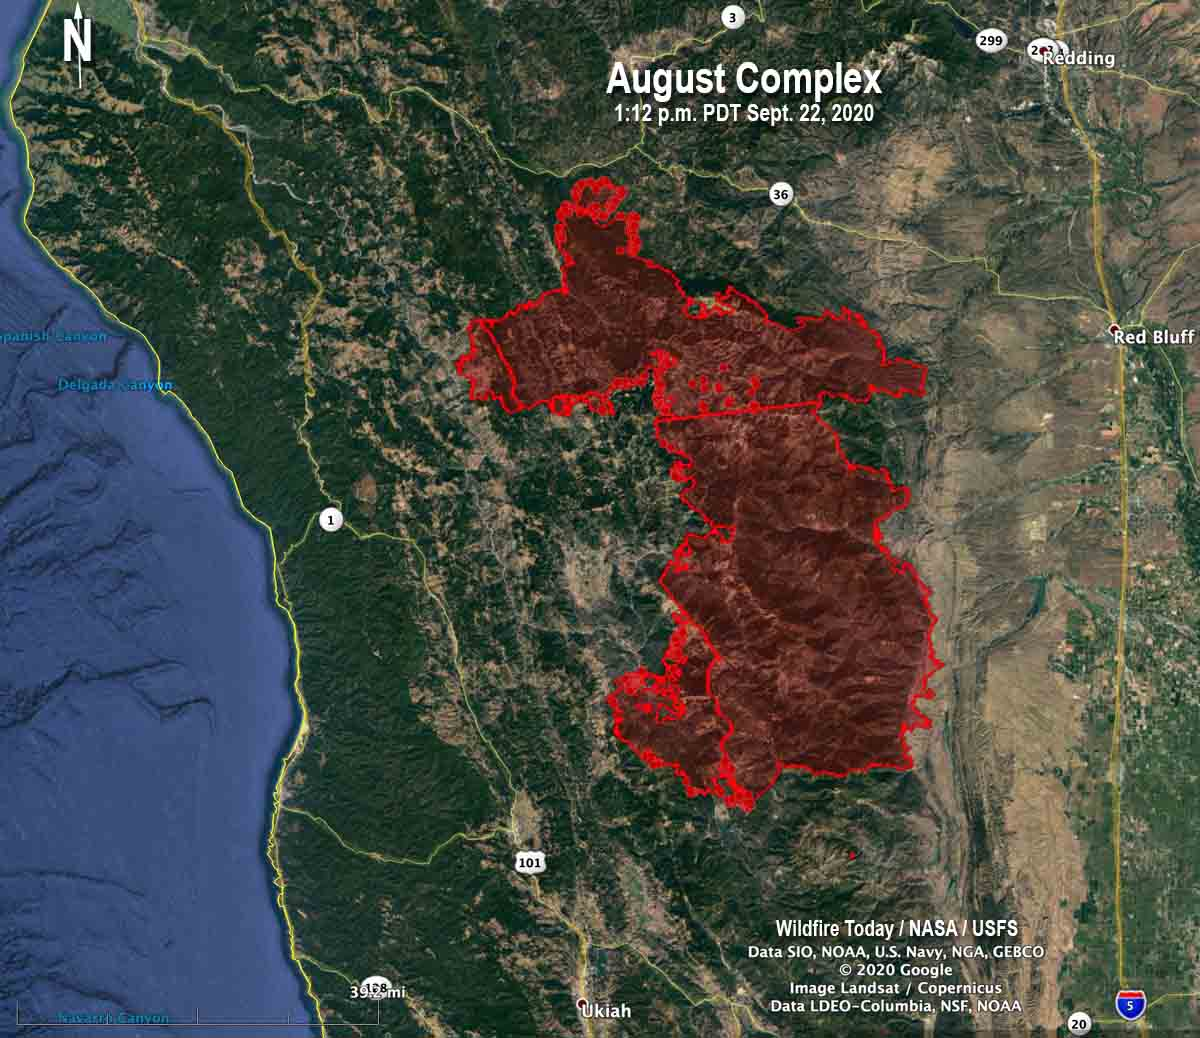 Map of the August Complex of fires